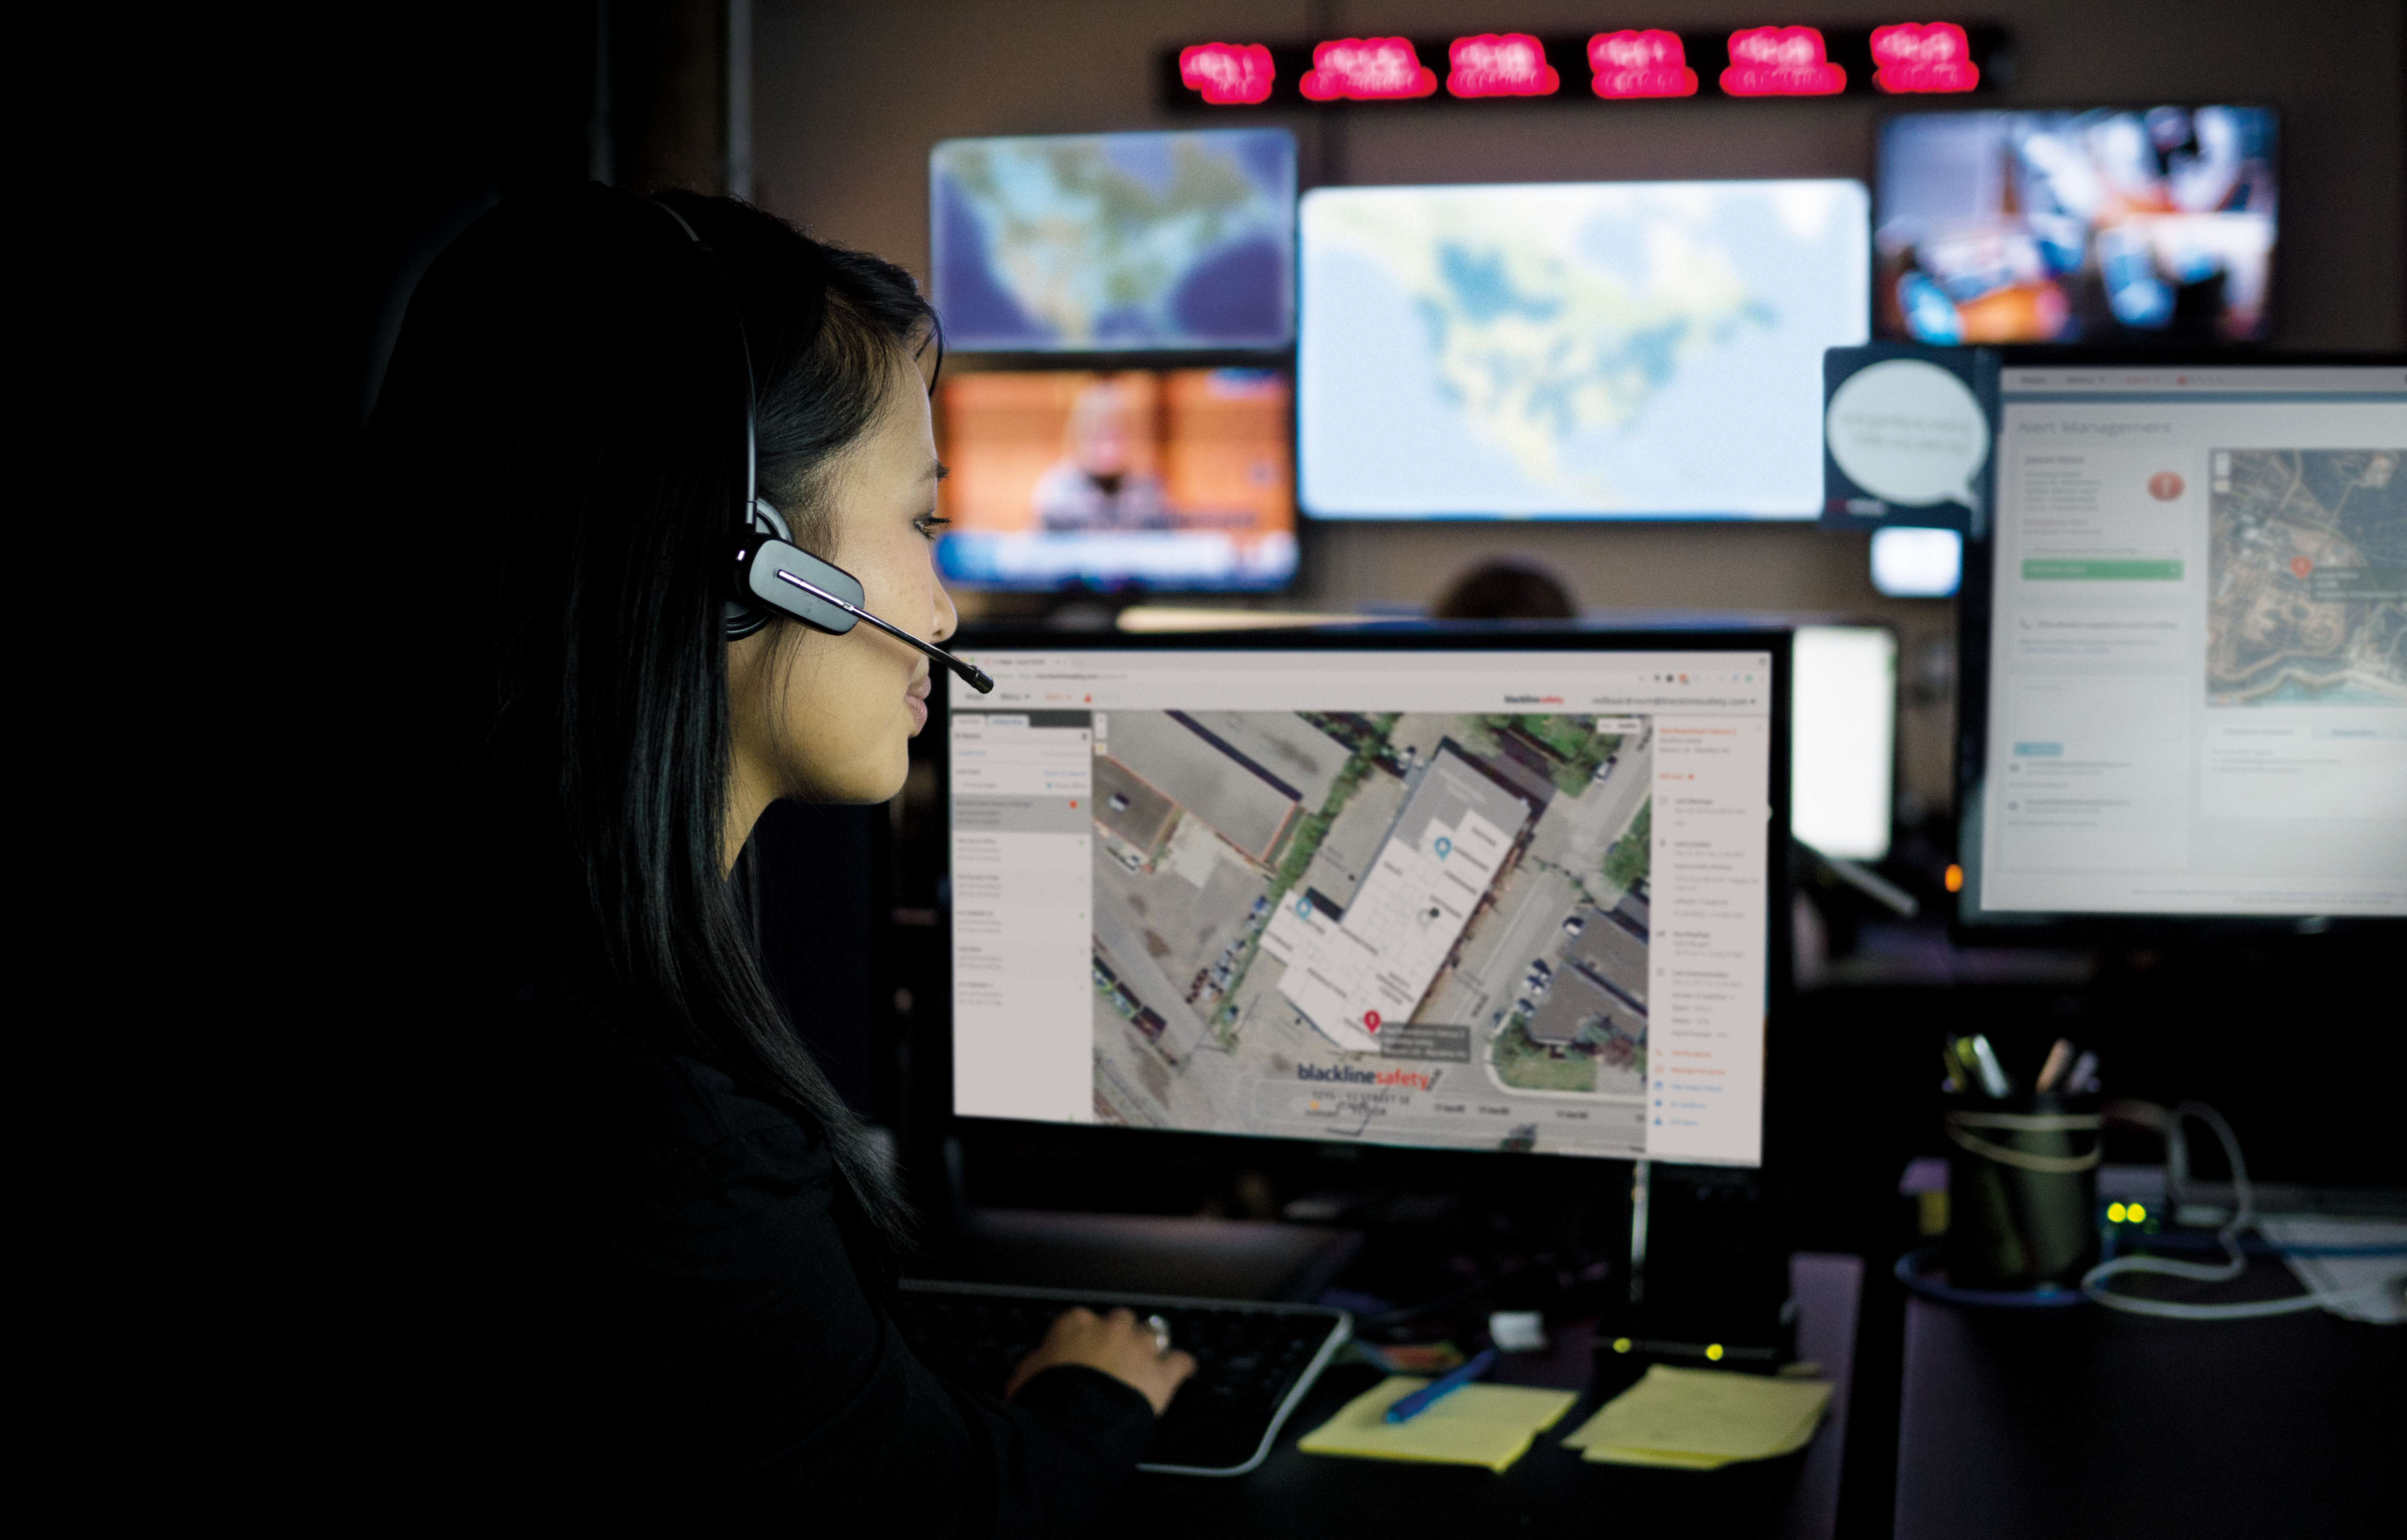 Safety monitoring with screens in background